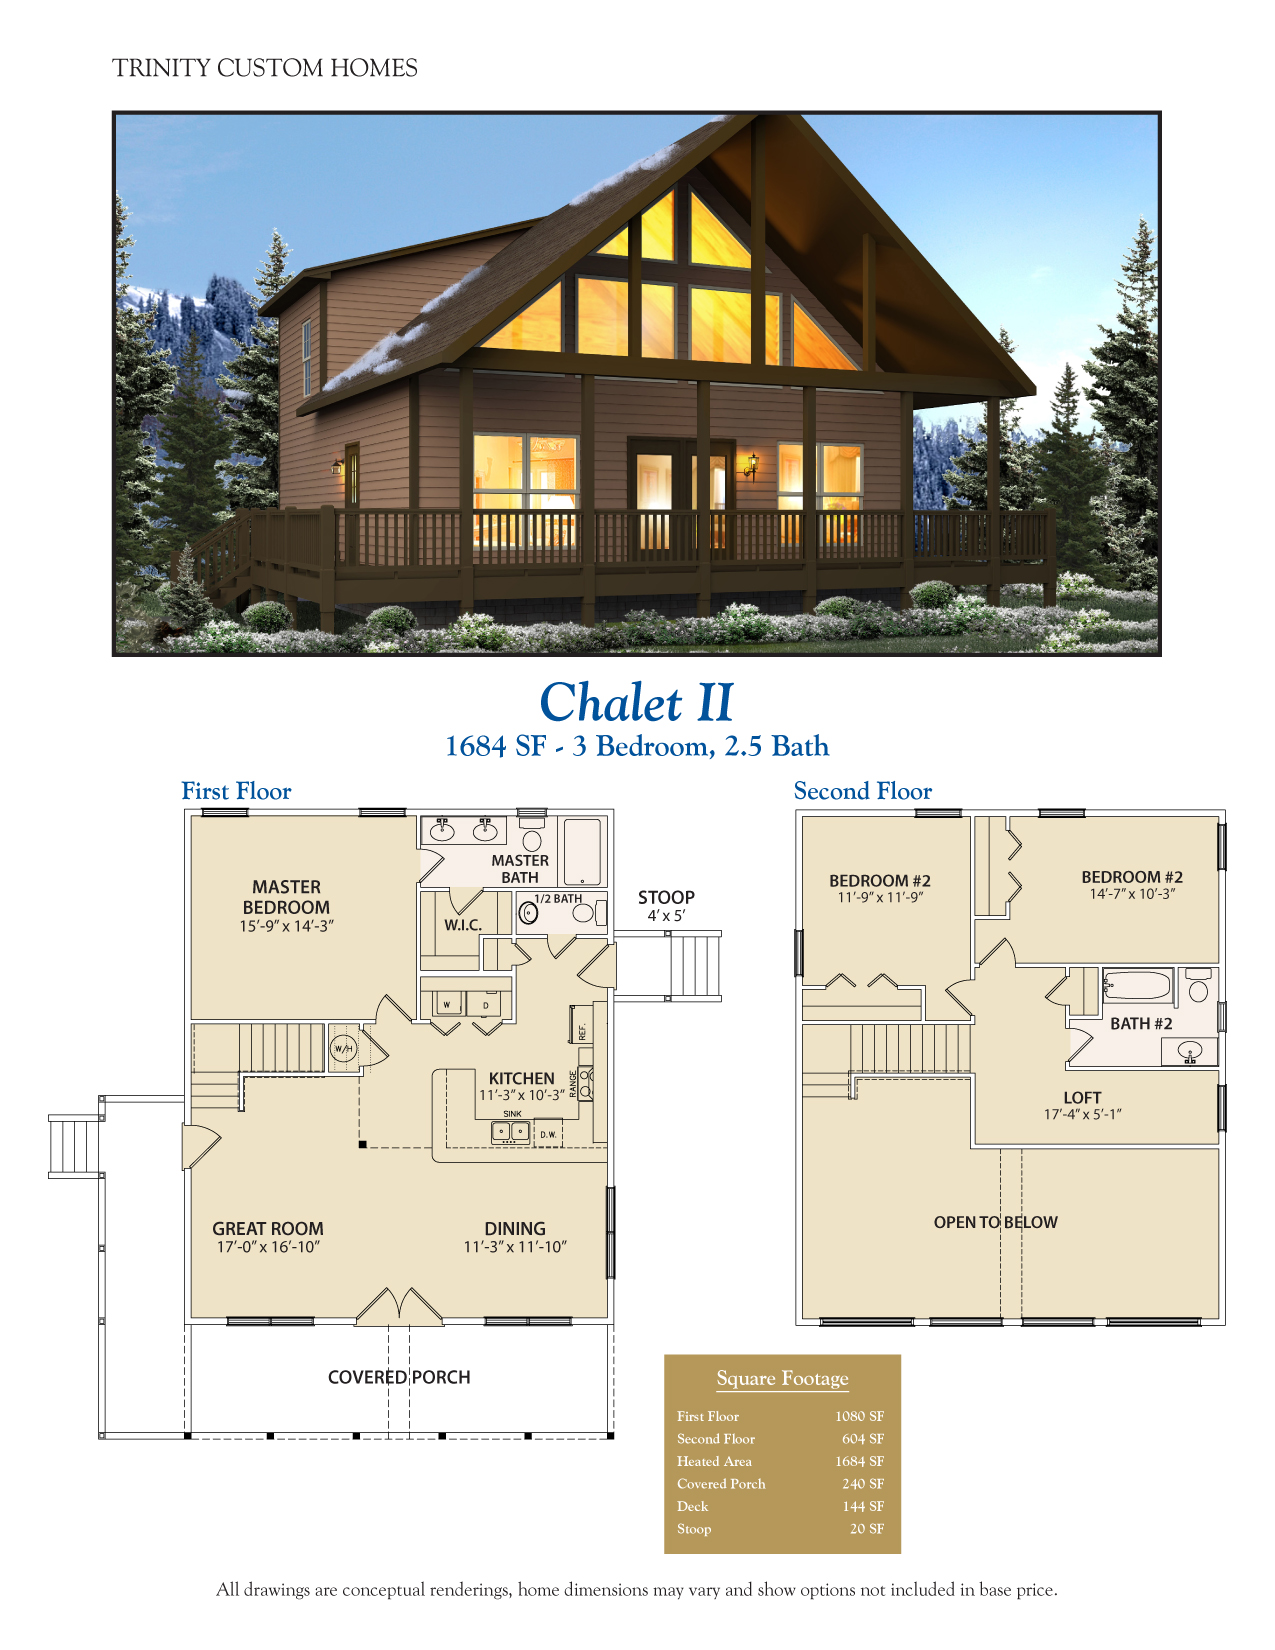 floor plans trinity custom homes georgia ForChalet Plans